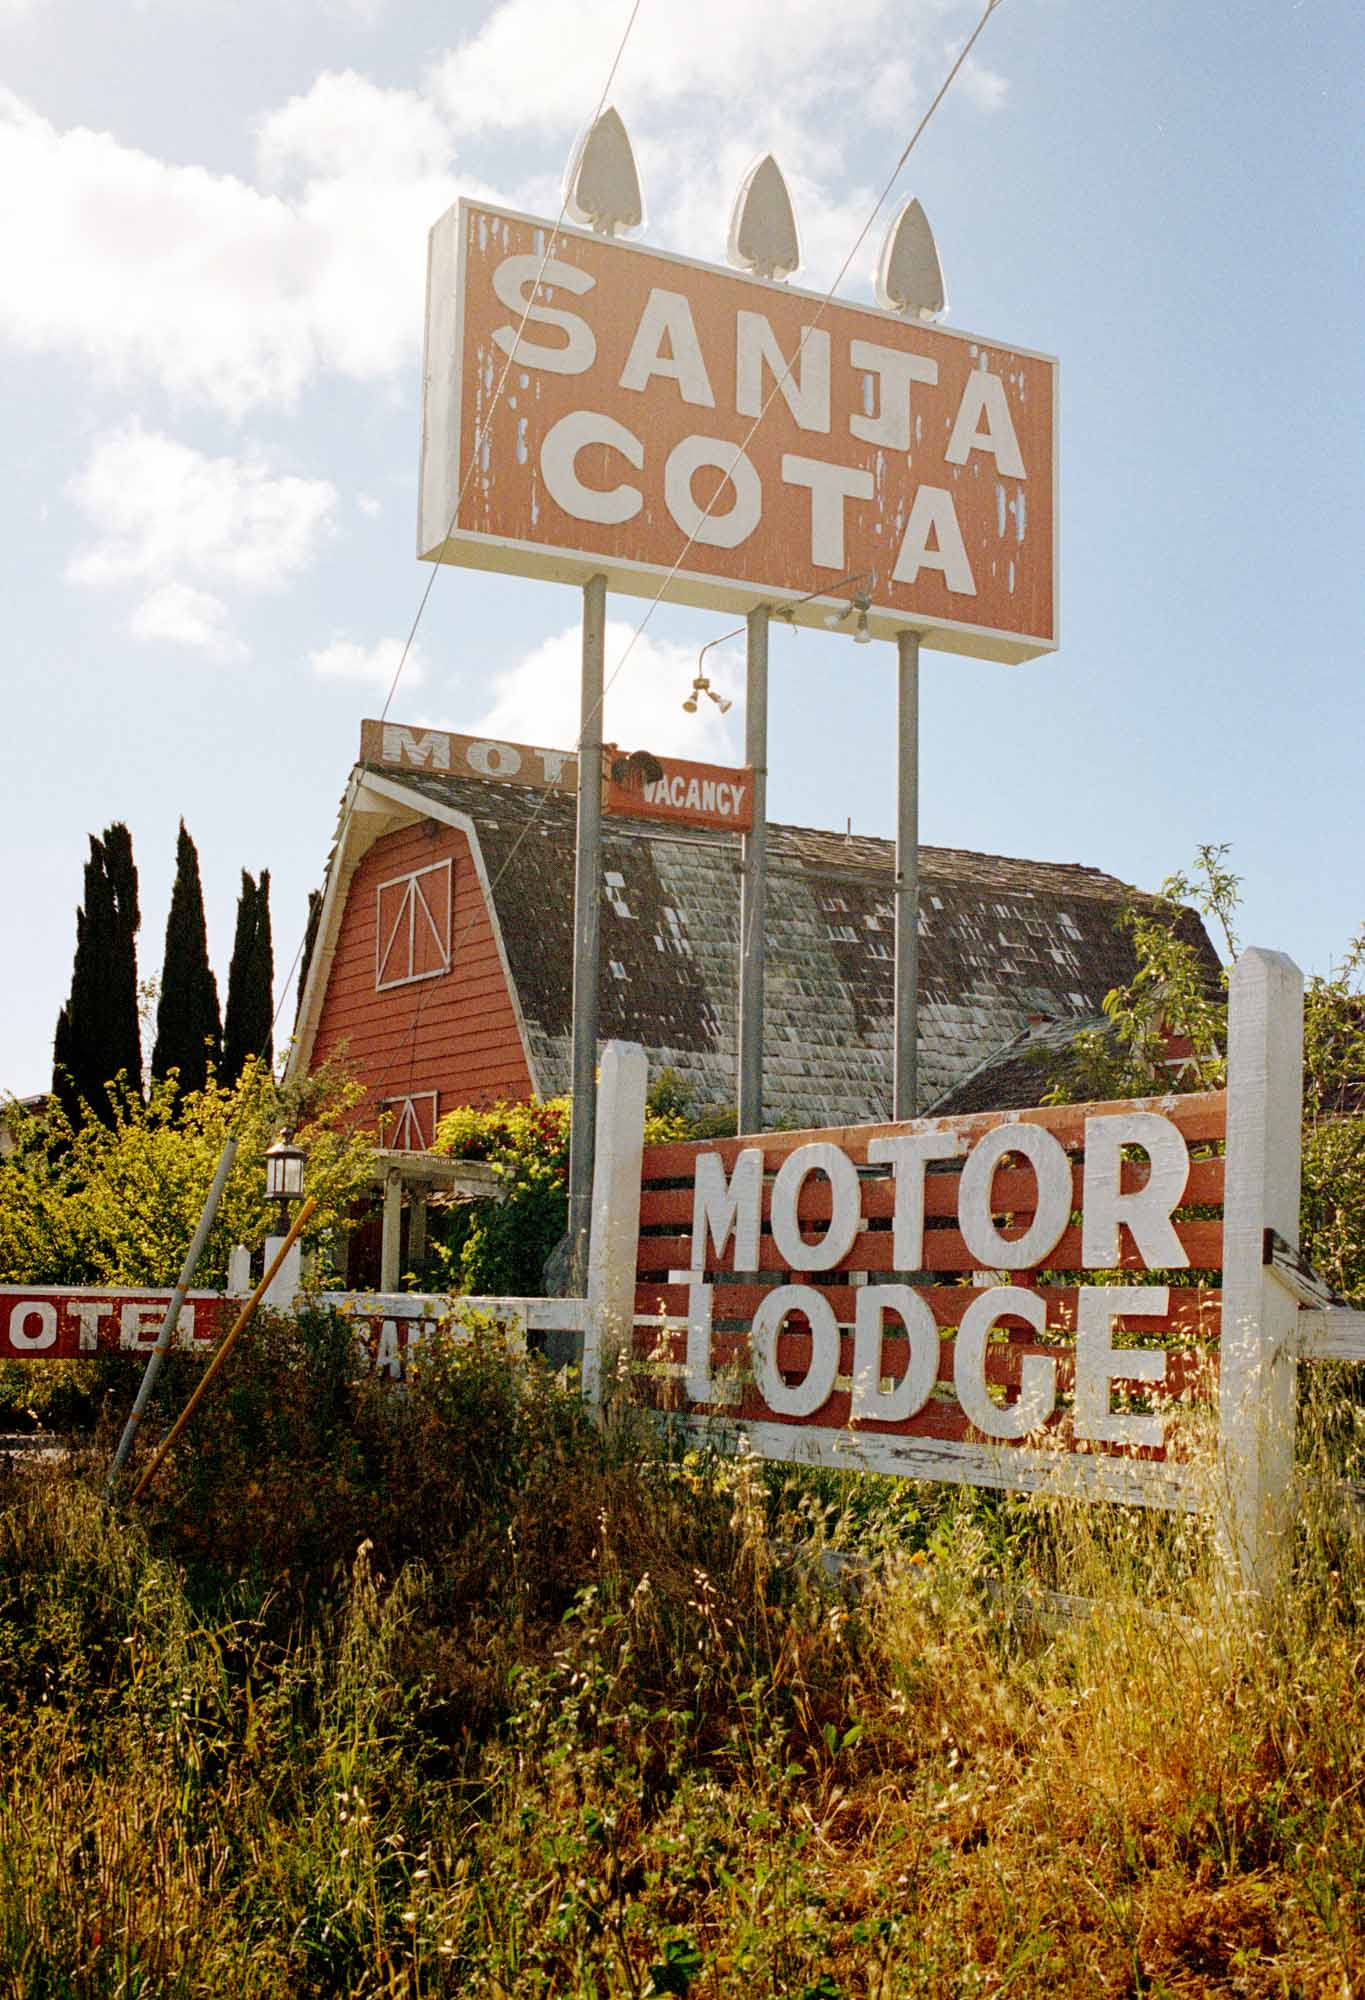 A photograph of an old 1950's American Motel. Large signs out the front & overgrown vegetation. The Motel is Barn style.